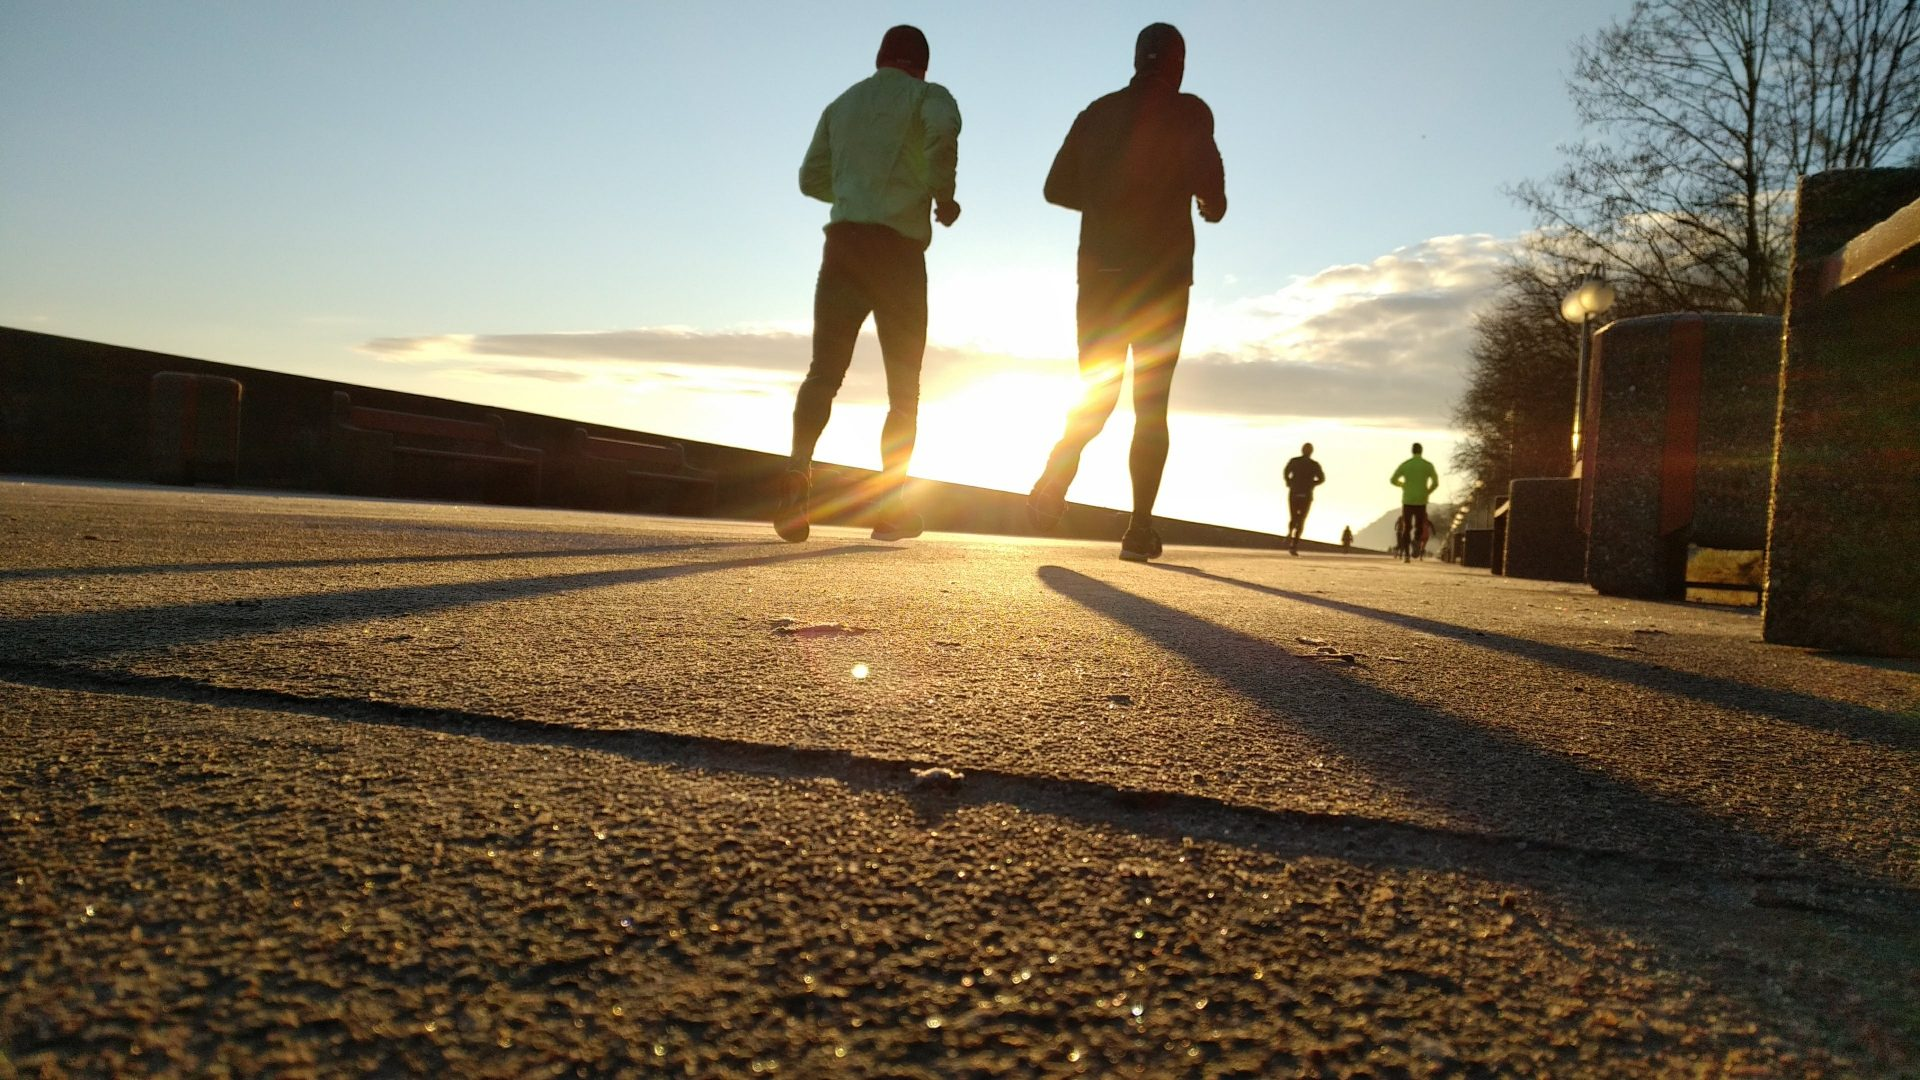 two people running on the road during sunset